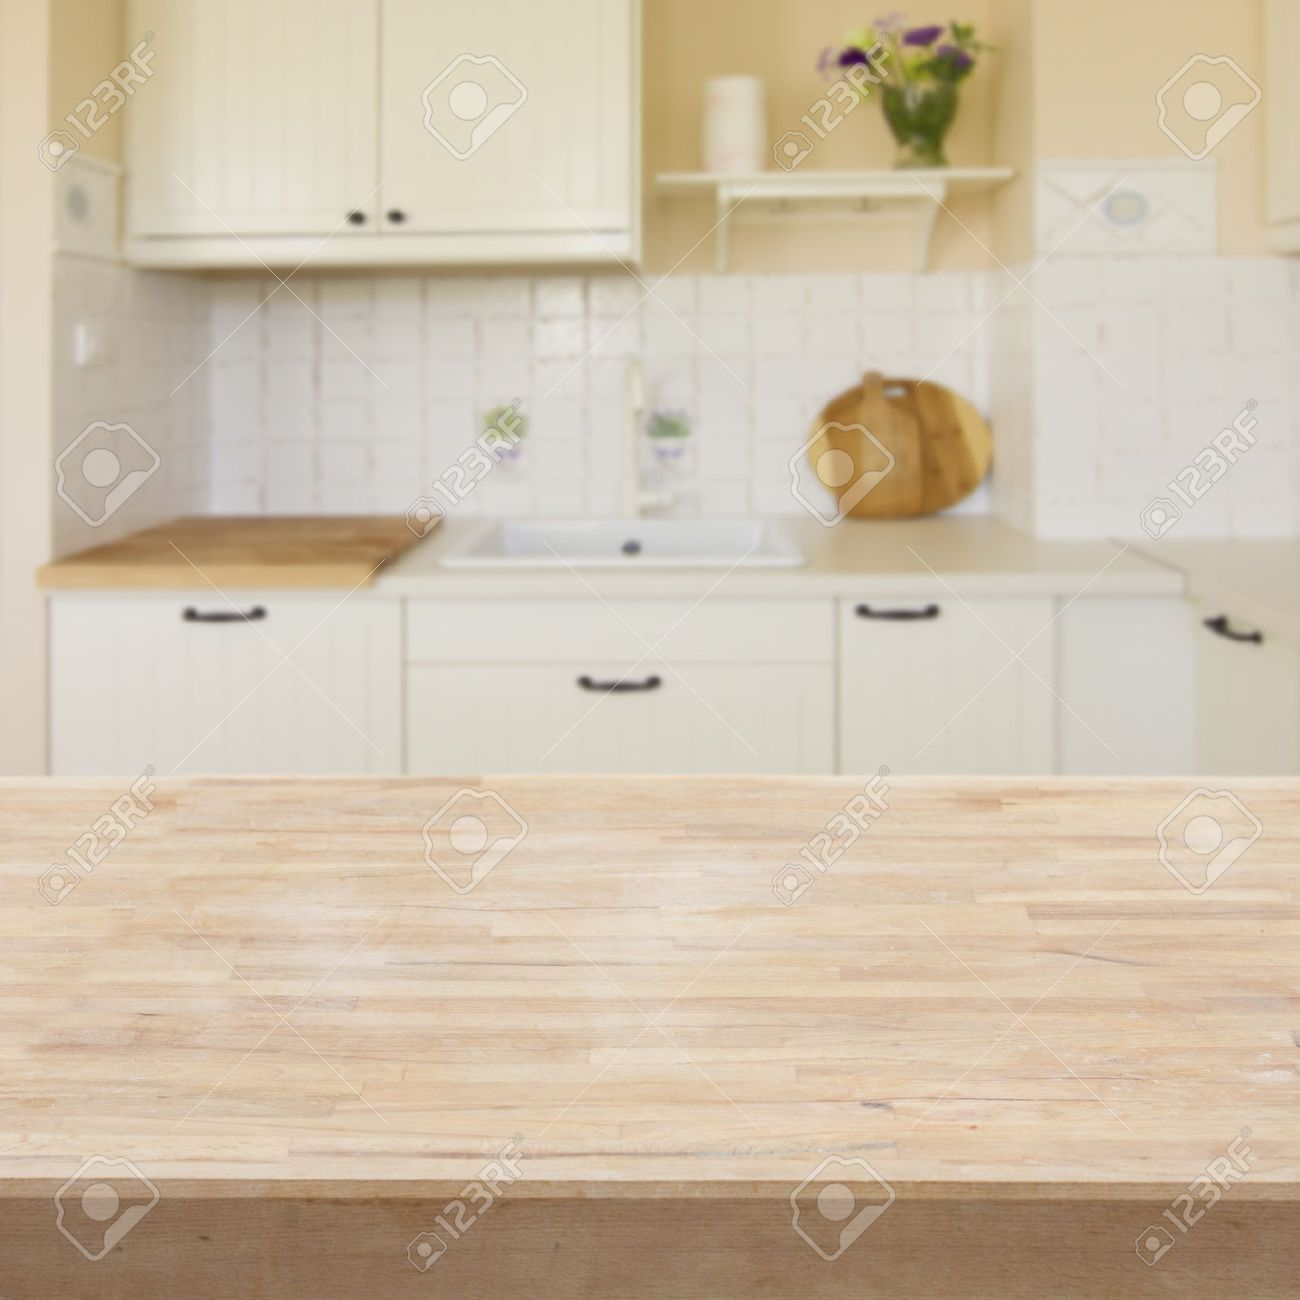 kitchen table background hd. wooden table in a light modern kitchen stock photo - 36791398 background hd